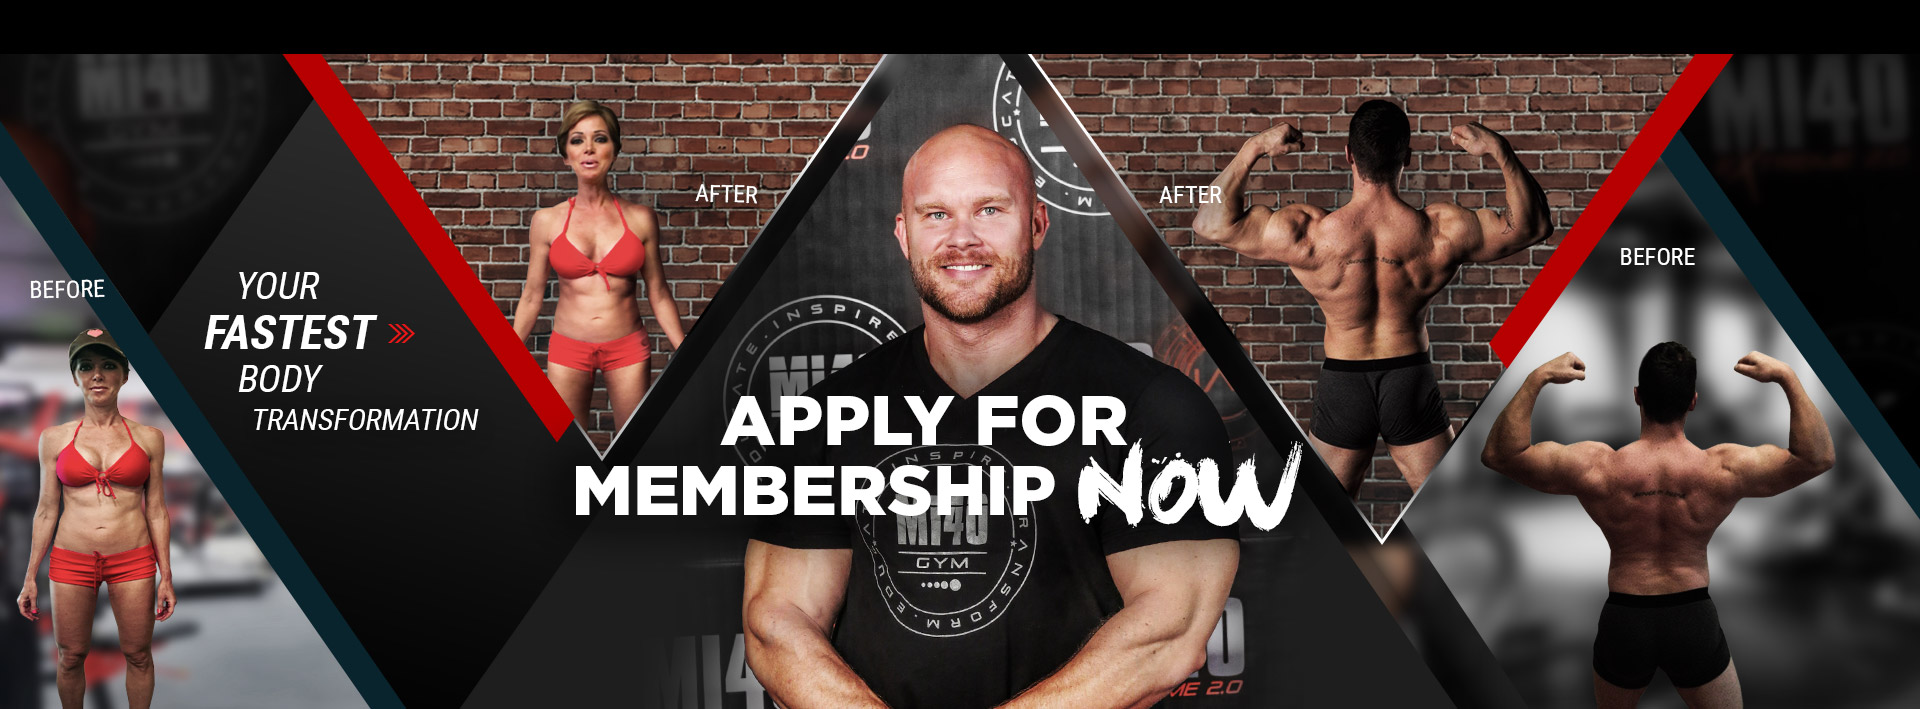 Apply for Mi40 Gym Membership Now